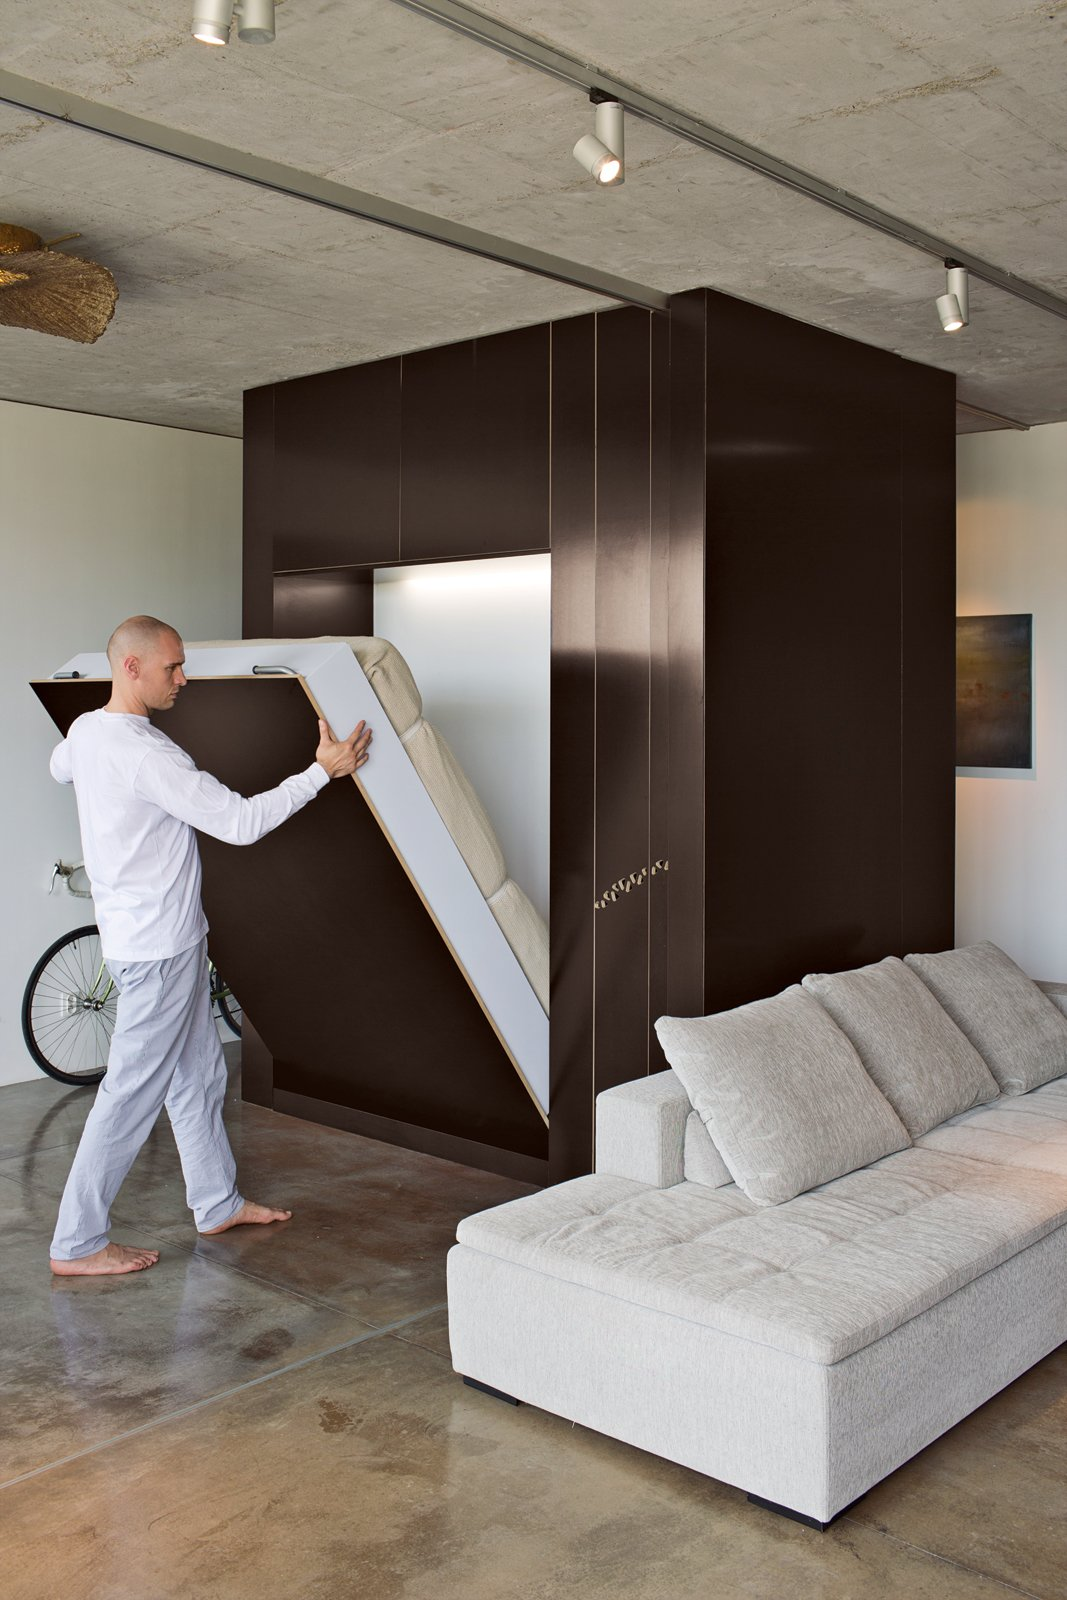 Bedroom and Bed By lowering the custom Murphy bed and rolling a sliding plywood door, Novak-Zemplinski creates an insta-guestroom. Photo by Andreas Meichsner.  Bedrooms by Dwell from Warsaw Loft with Multifunctional Furniture